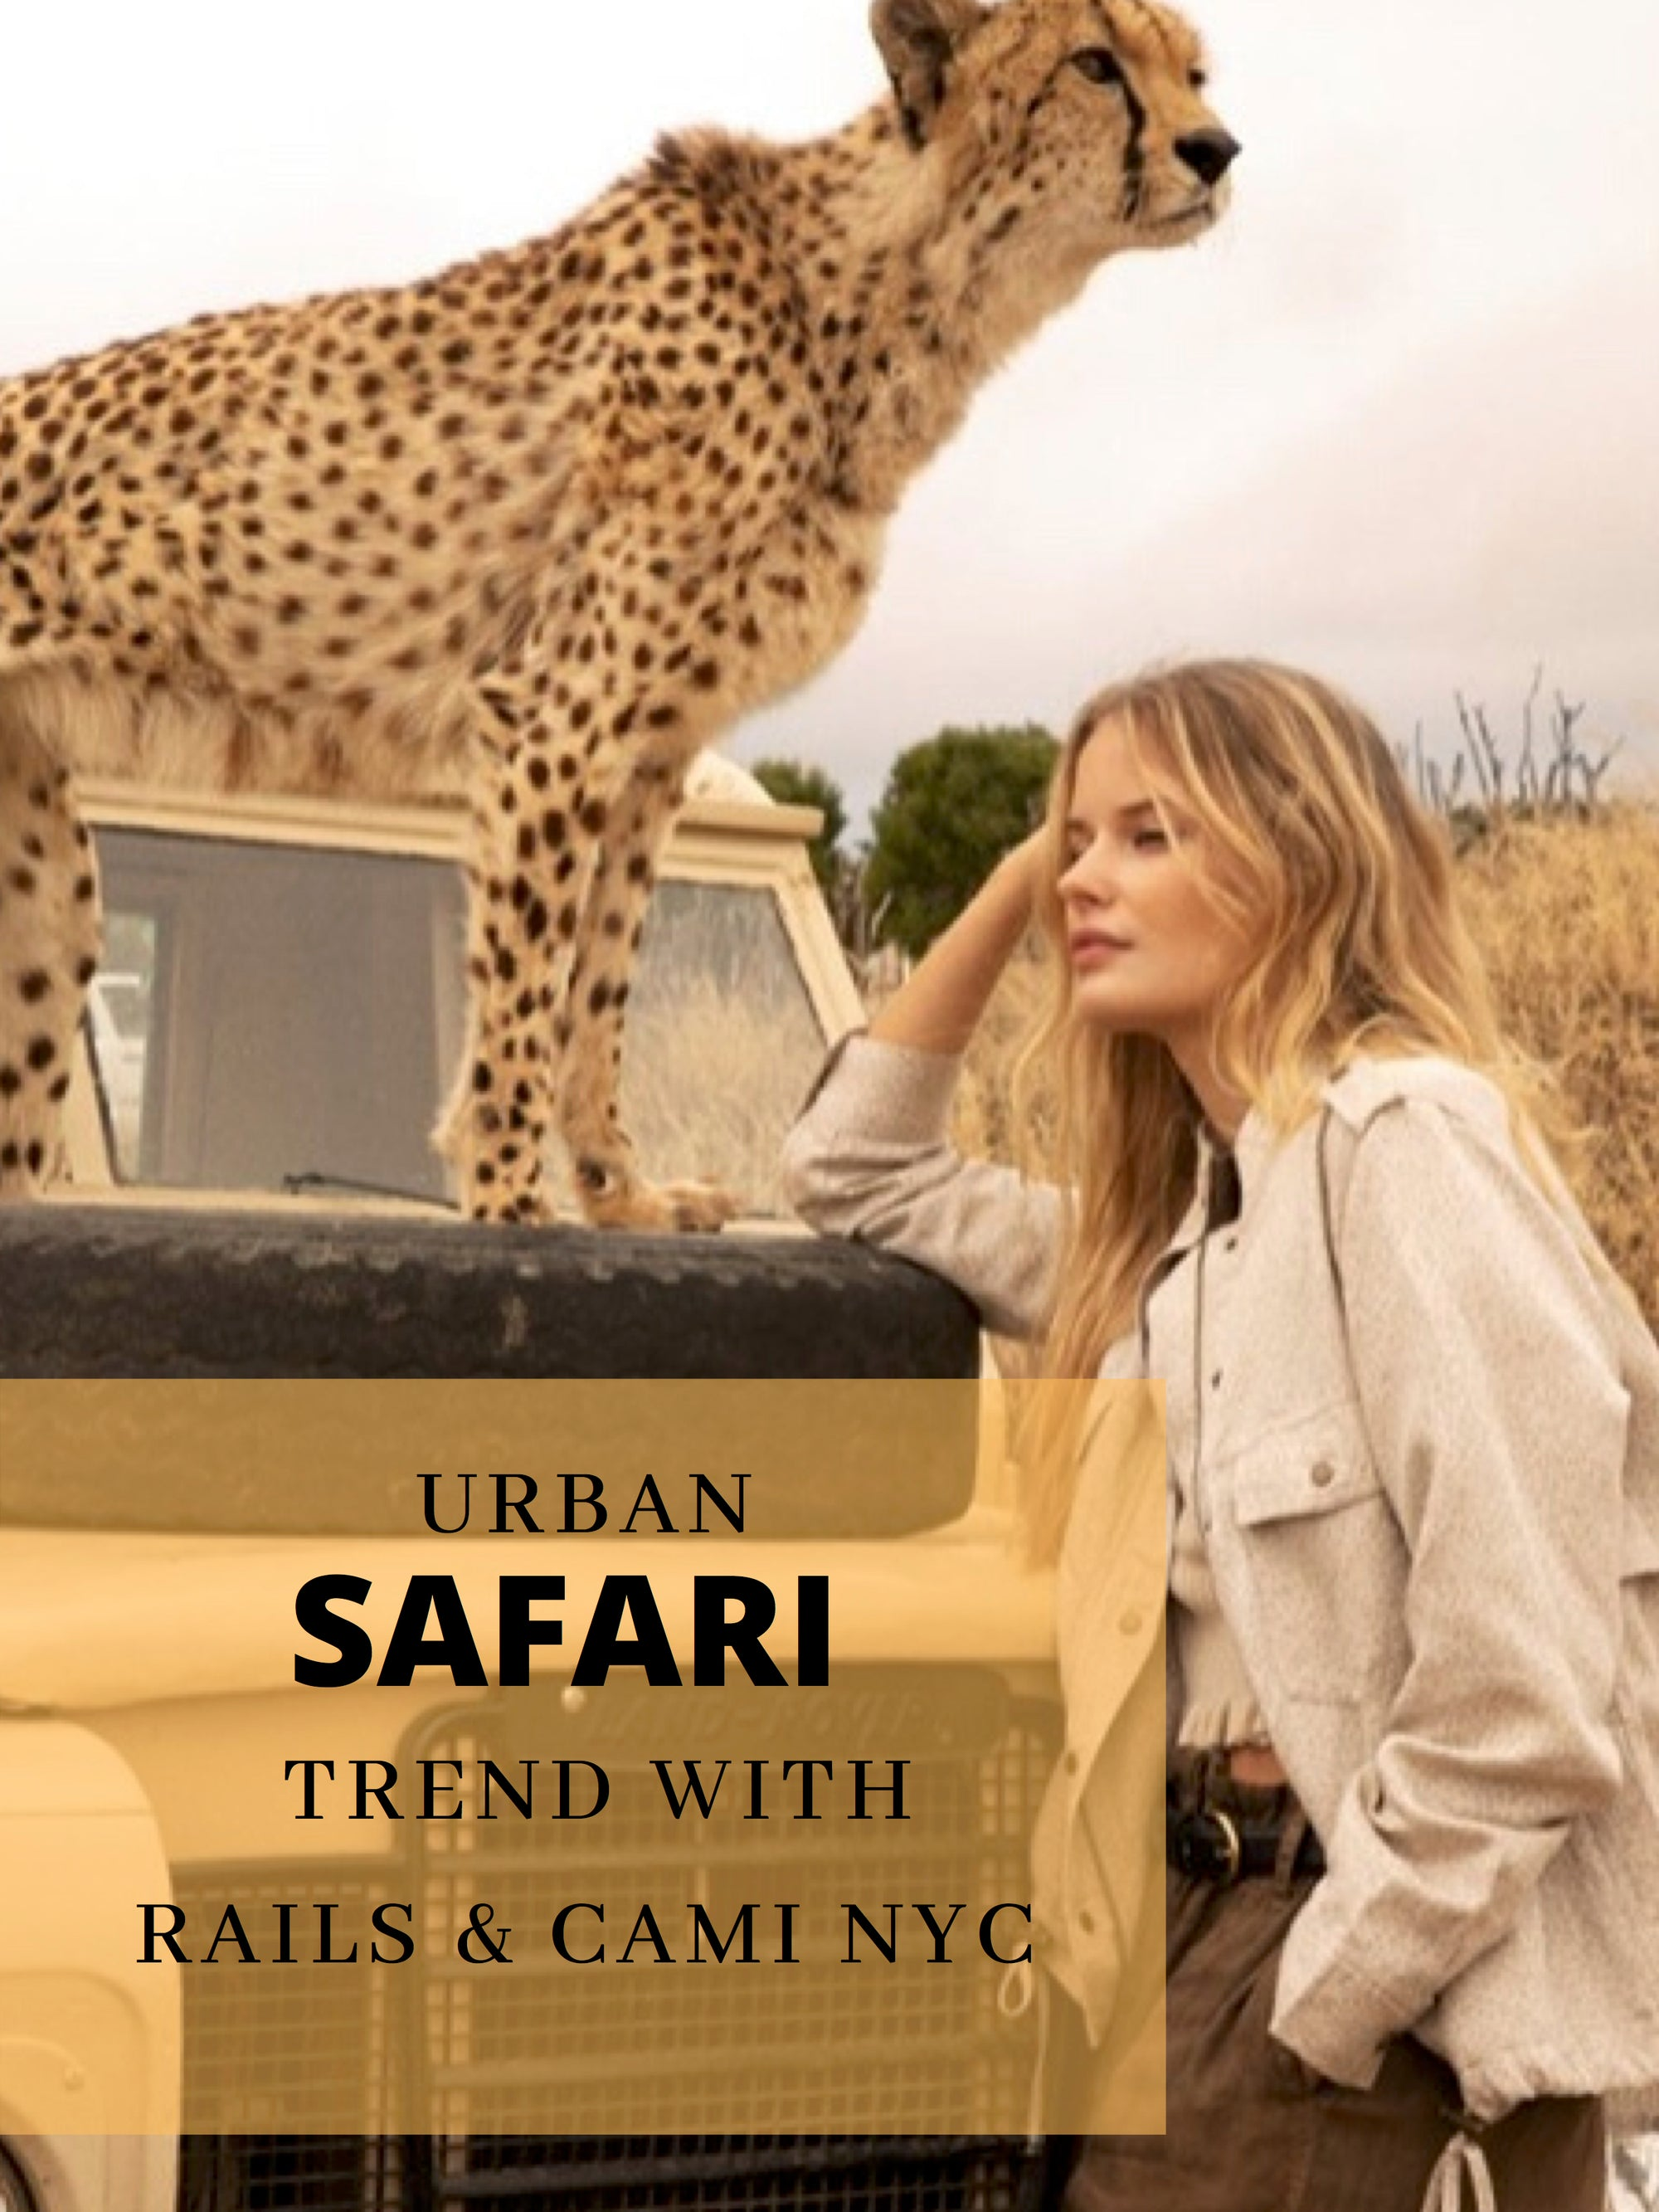 Urban Safari Trend with RAILS and CAMI NYC